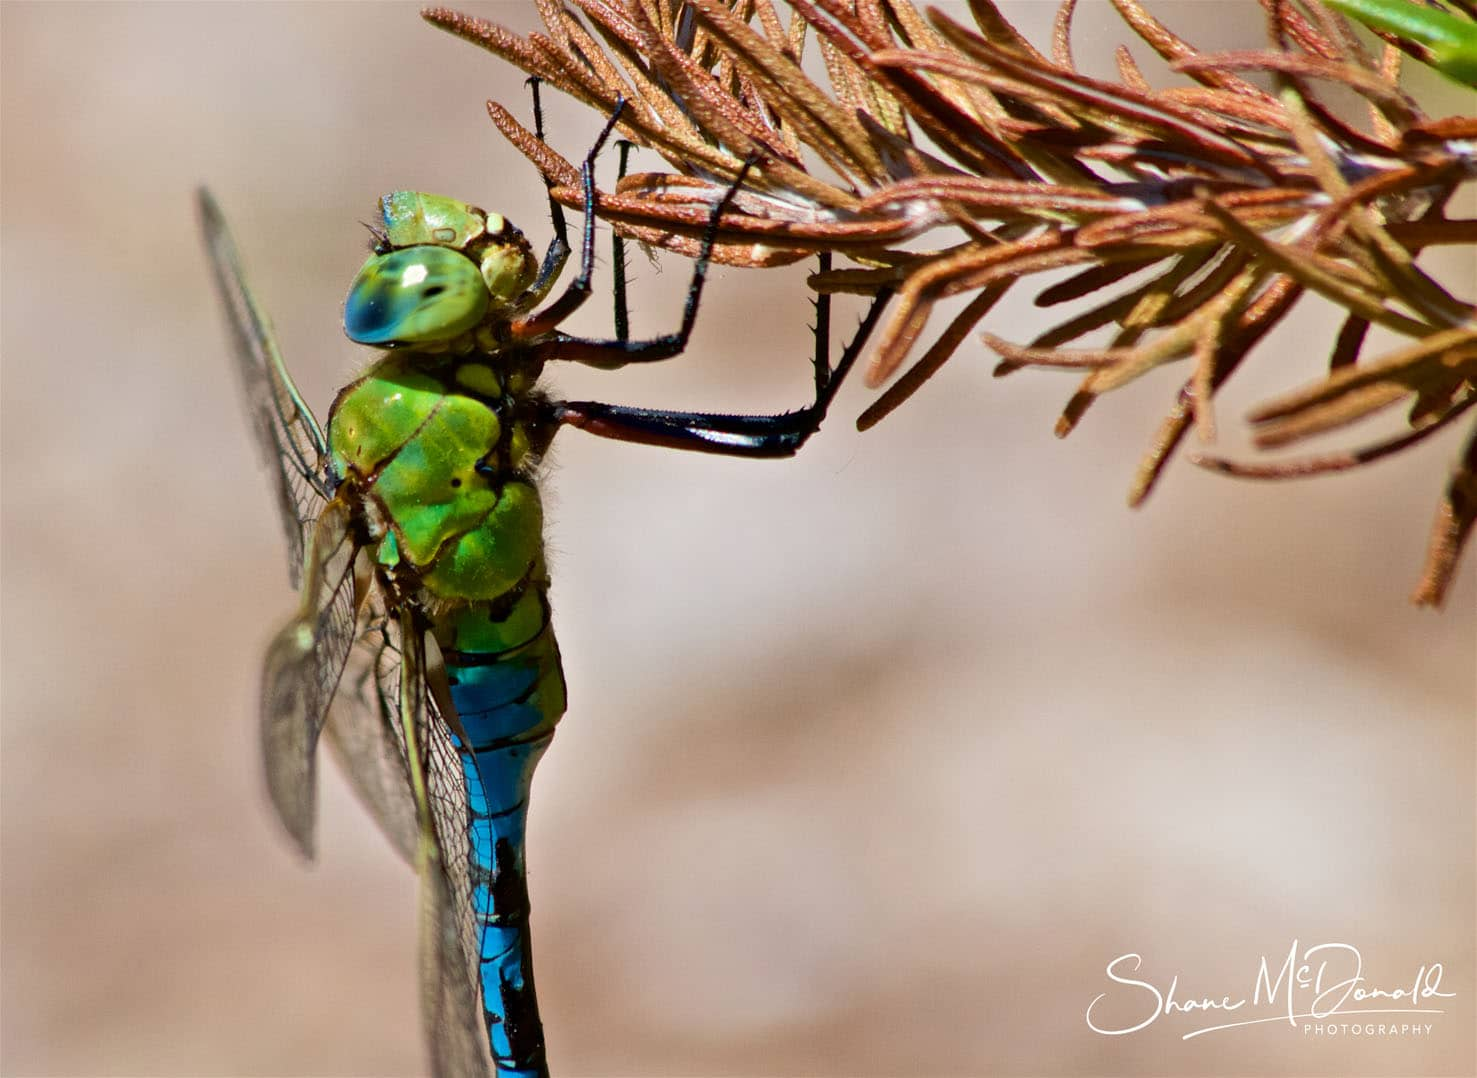 Dragonfly Photo Closeup - Wildlife on the Isle of Wight